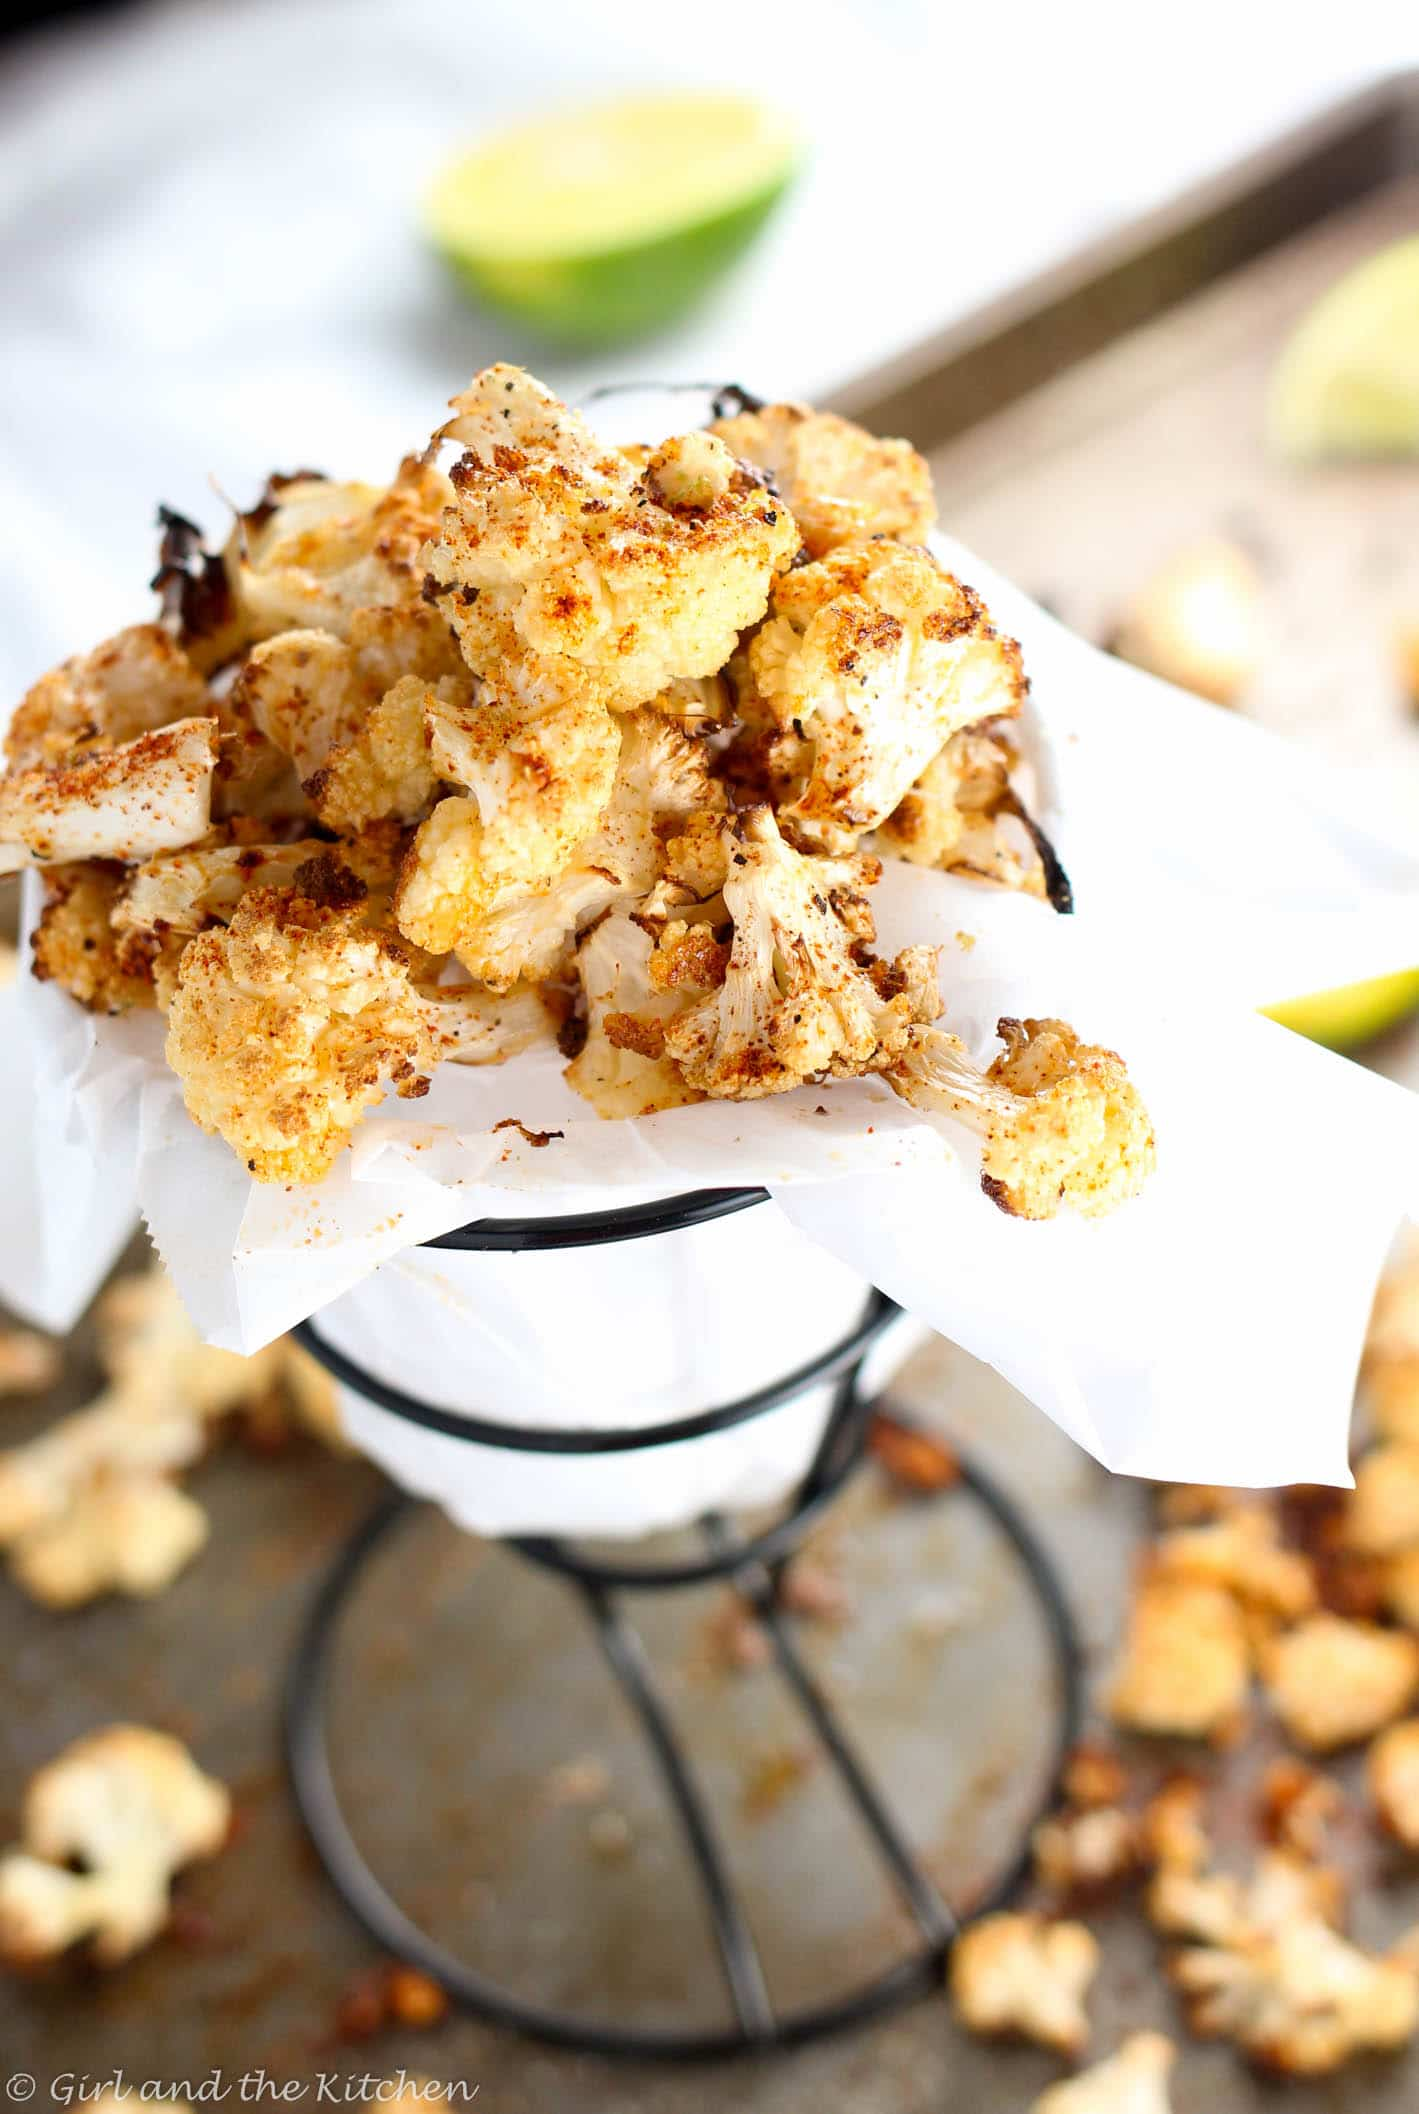 Chipotle-Lime-Oven-Roasted-Cauliflower-Popcorn-3-of-7